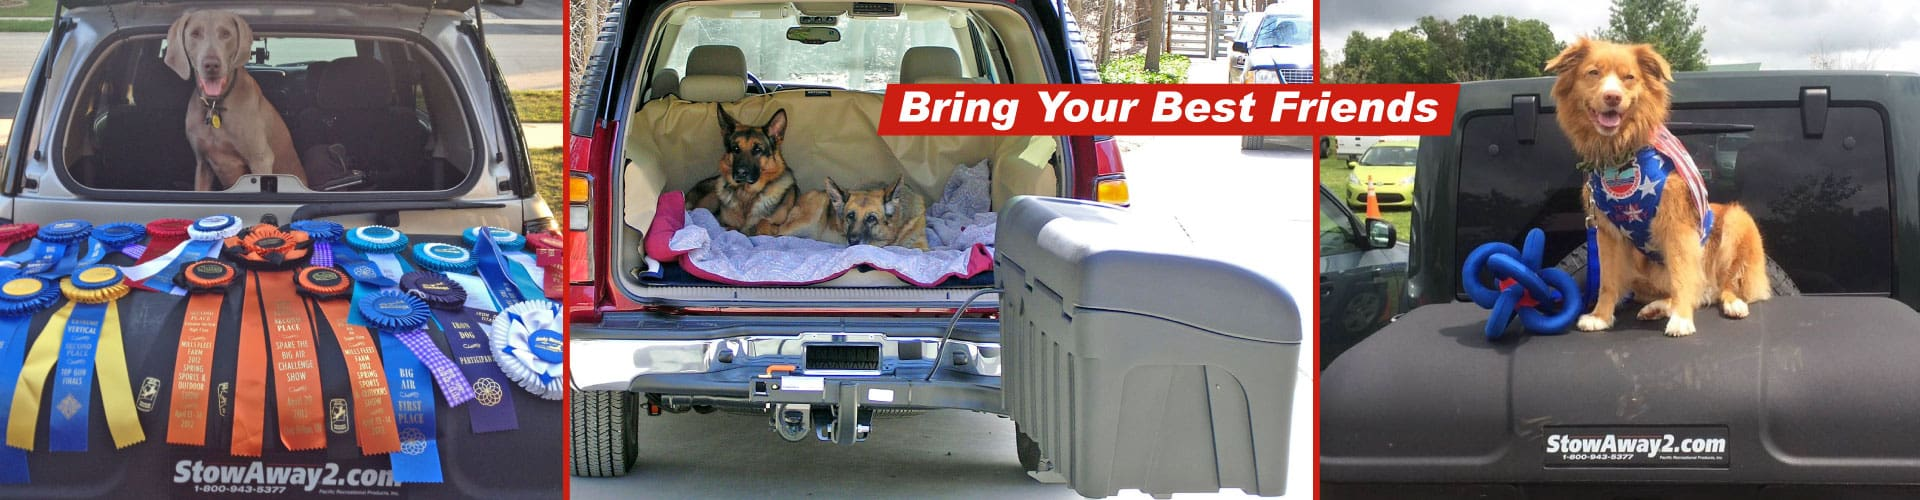 StowAway traveling with dogs banner